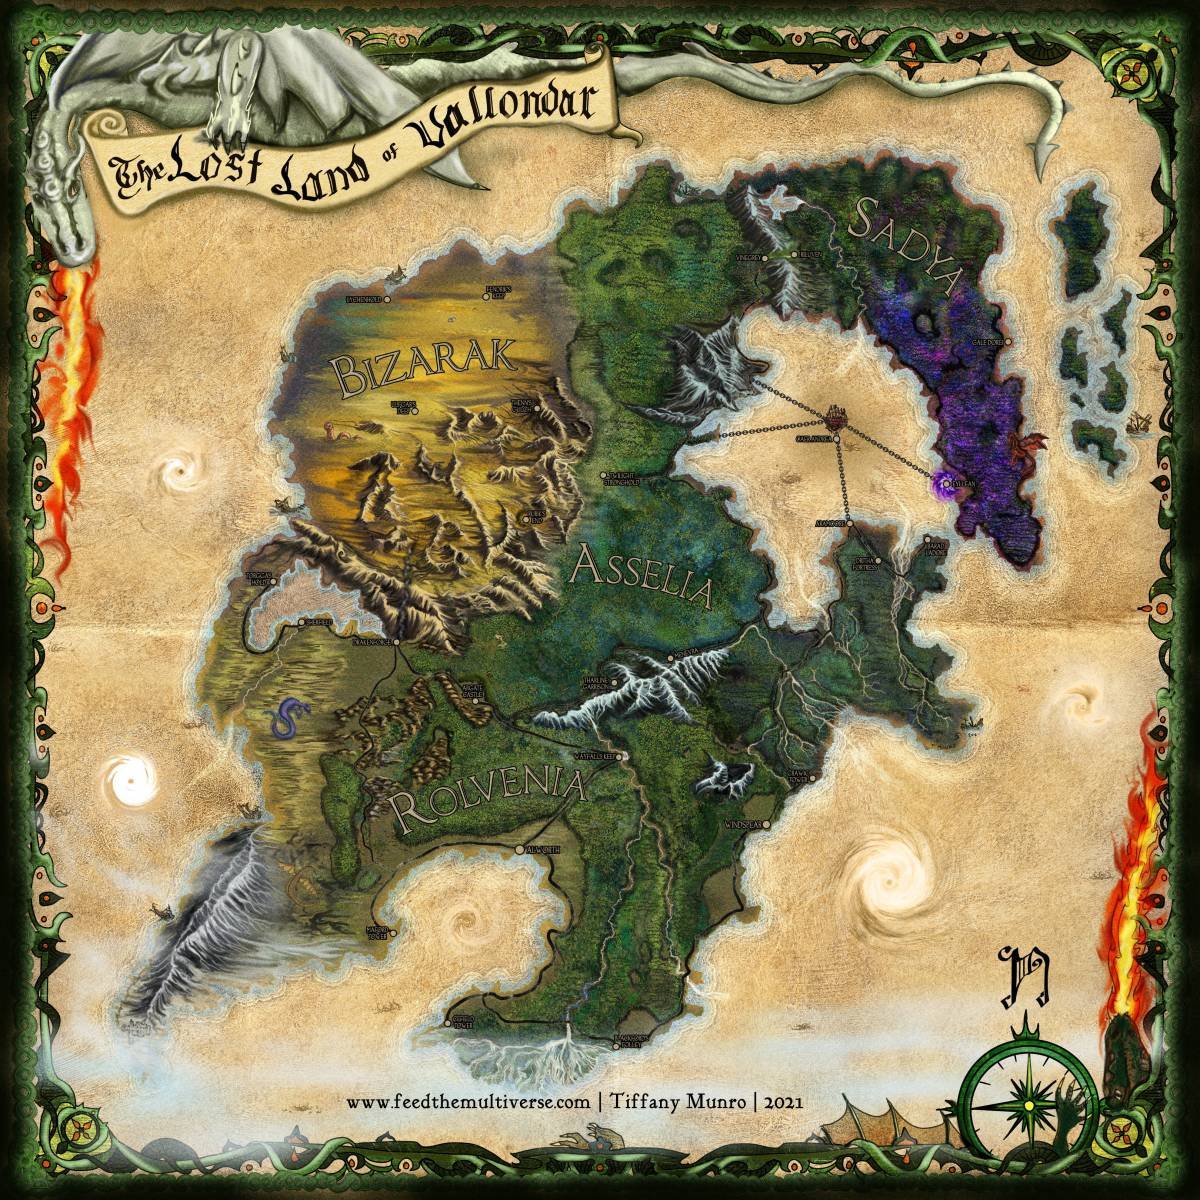 Vallondar parchment map painting custom poster commission for dungeon master dungeons and dragons dragon frame compass banner how to get a custom map made for my RPG campaign